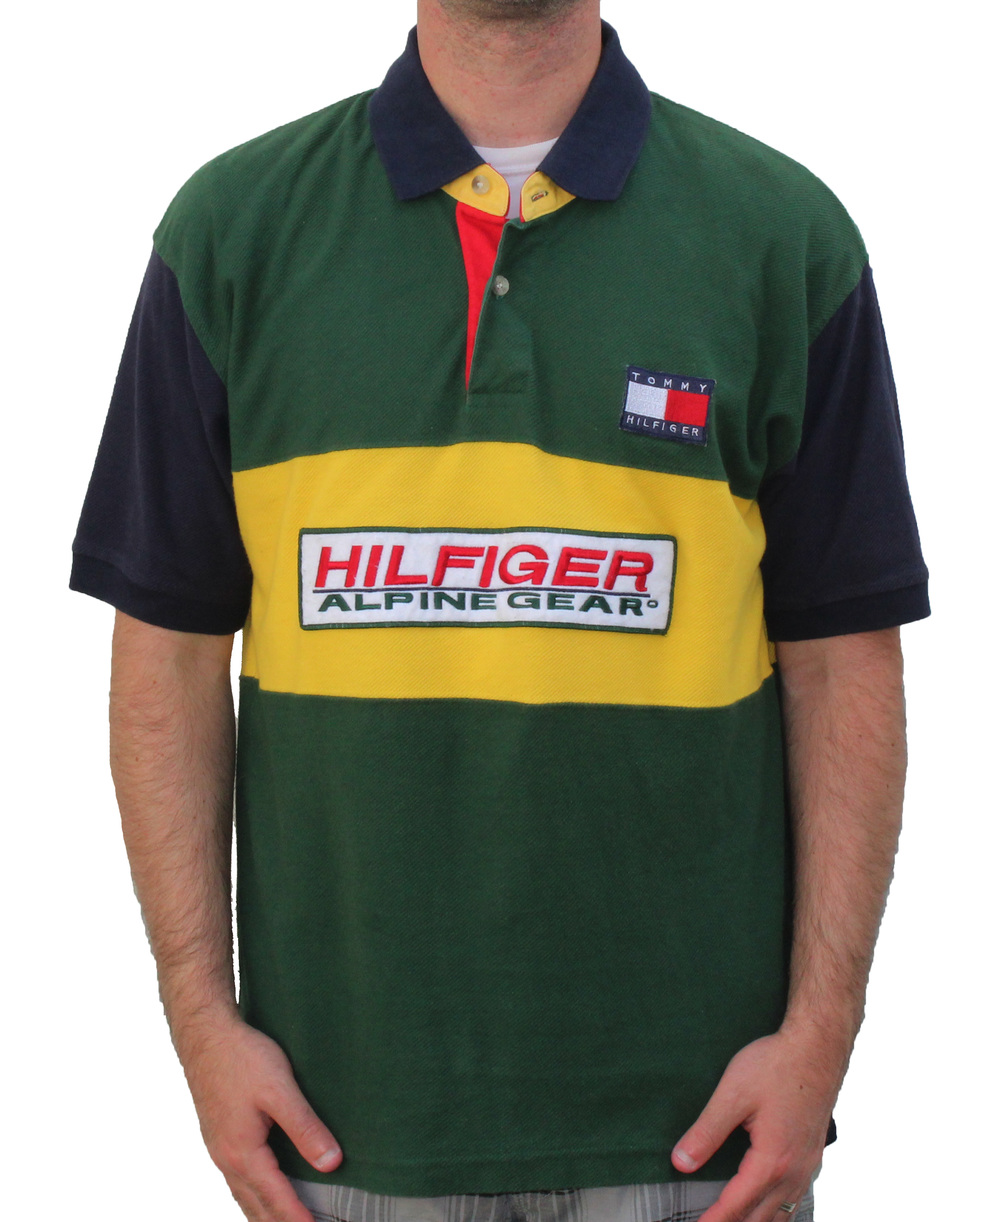 0a6186d52 Vintage 90s Tommy Hilfiger Alpine Gear green yellow rugby